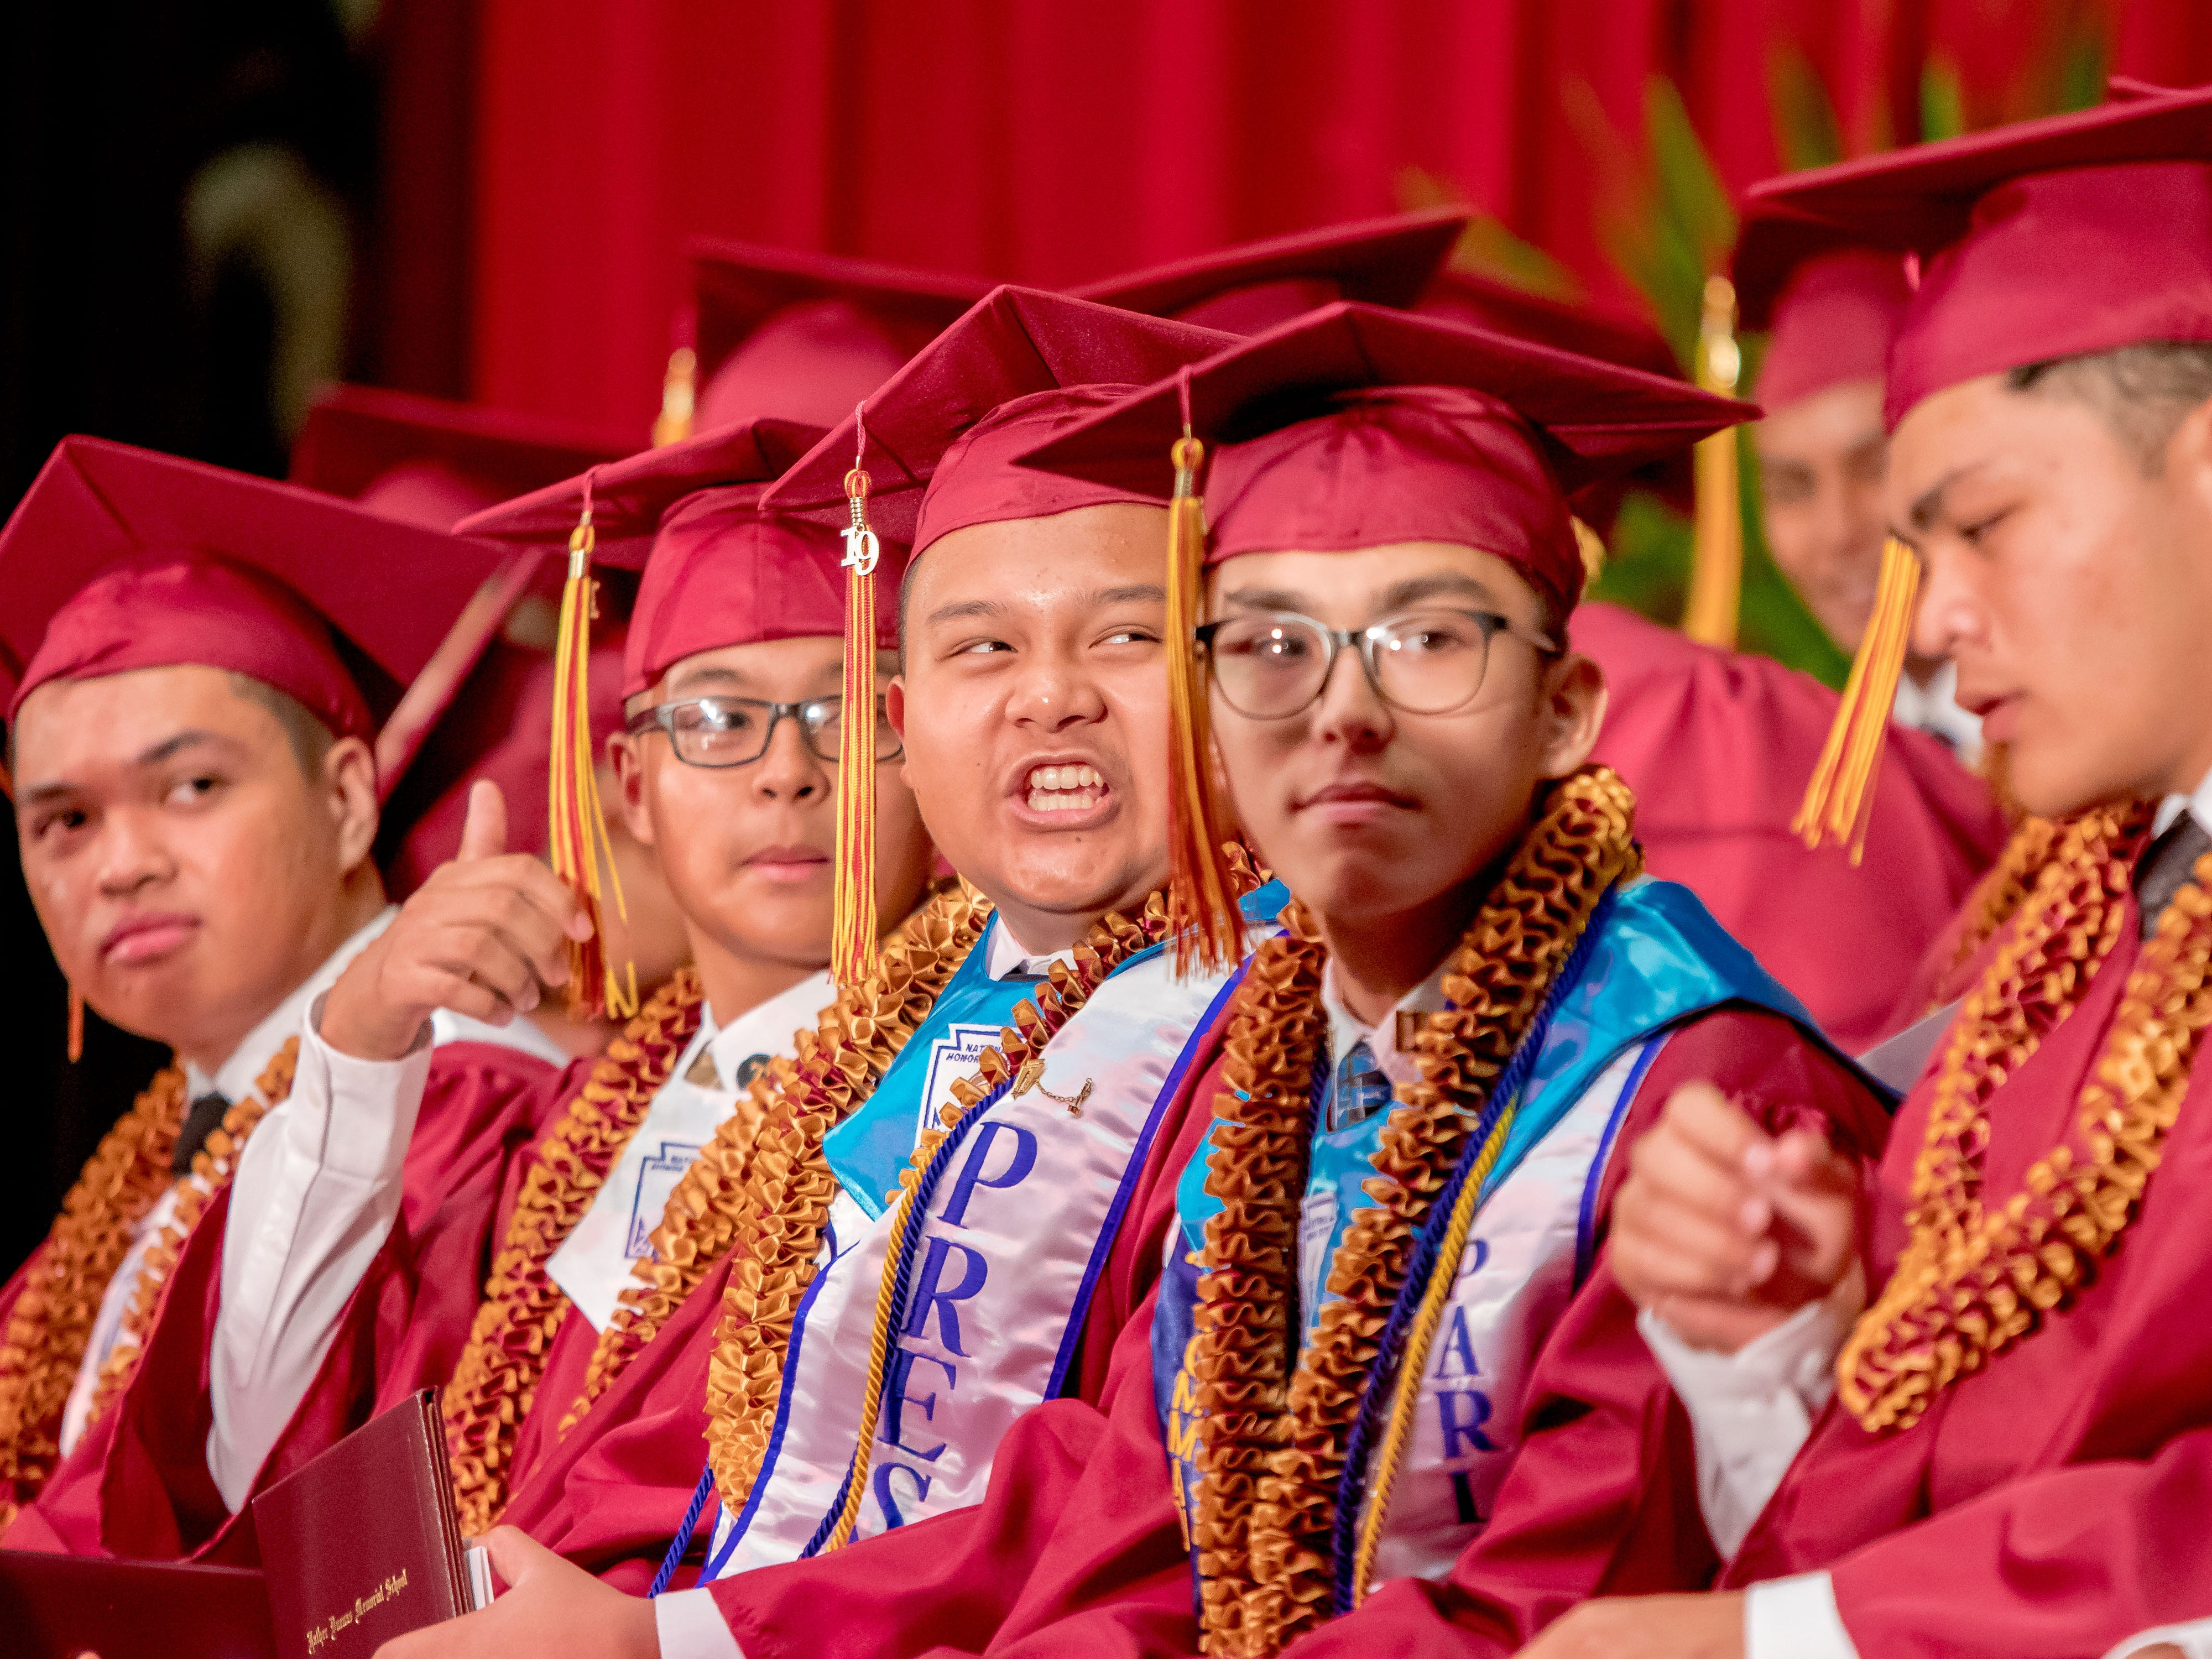 Father Duenas Memorial School held the Class of 2019 commencement ceremony at the Phoenix Center on Wednesday, May 8, 2019.